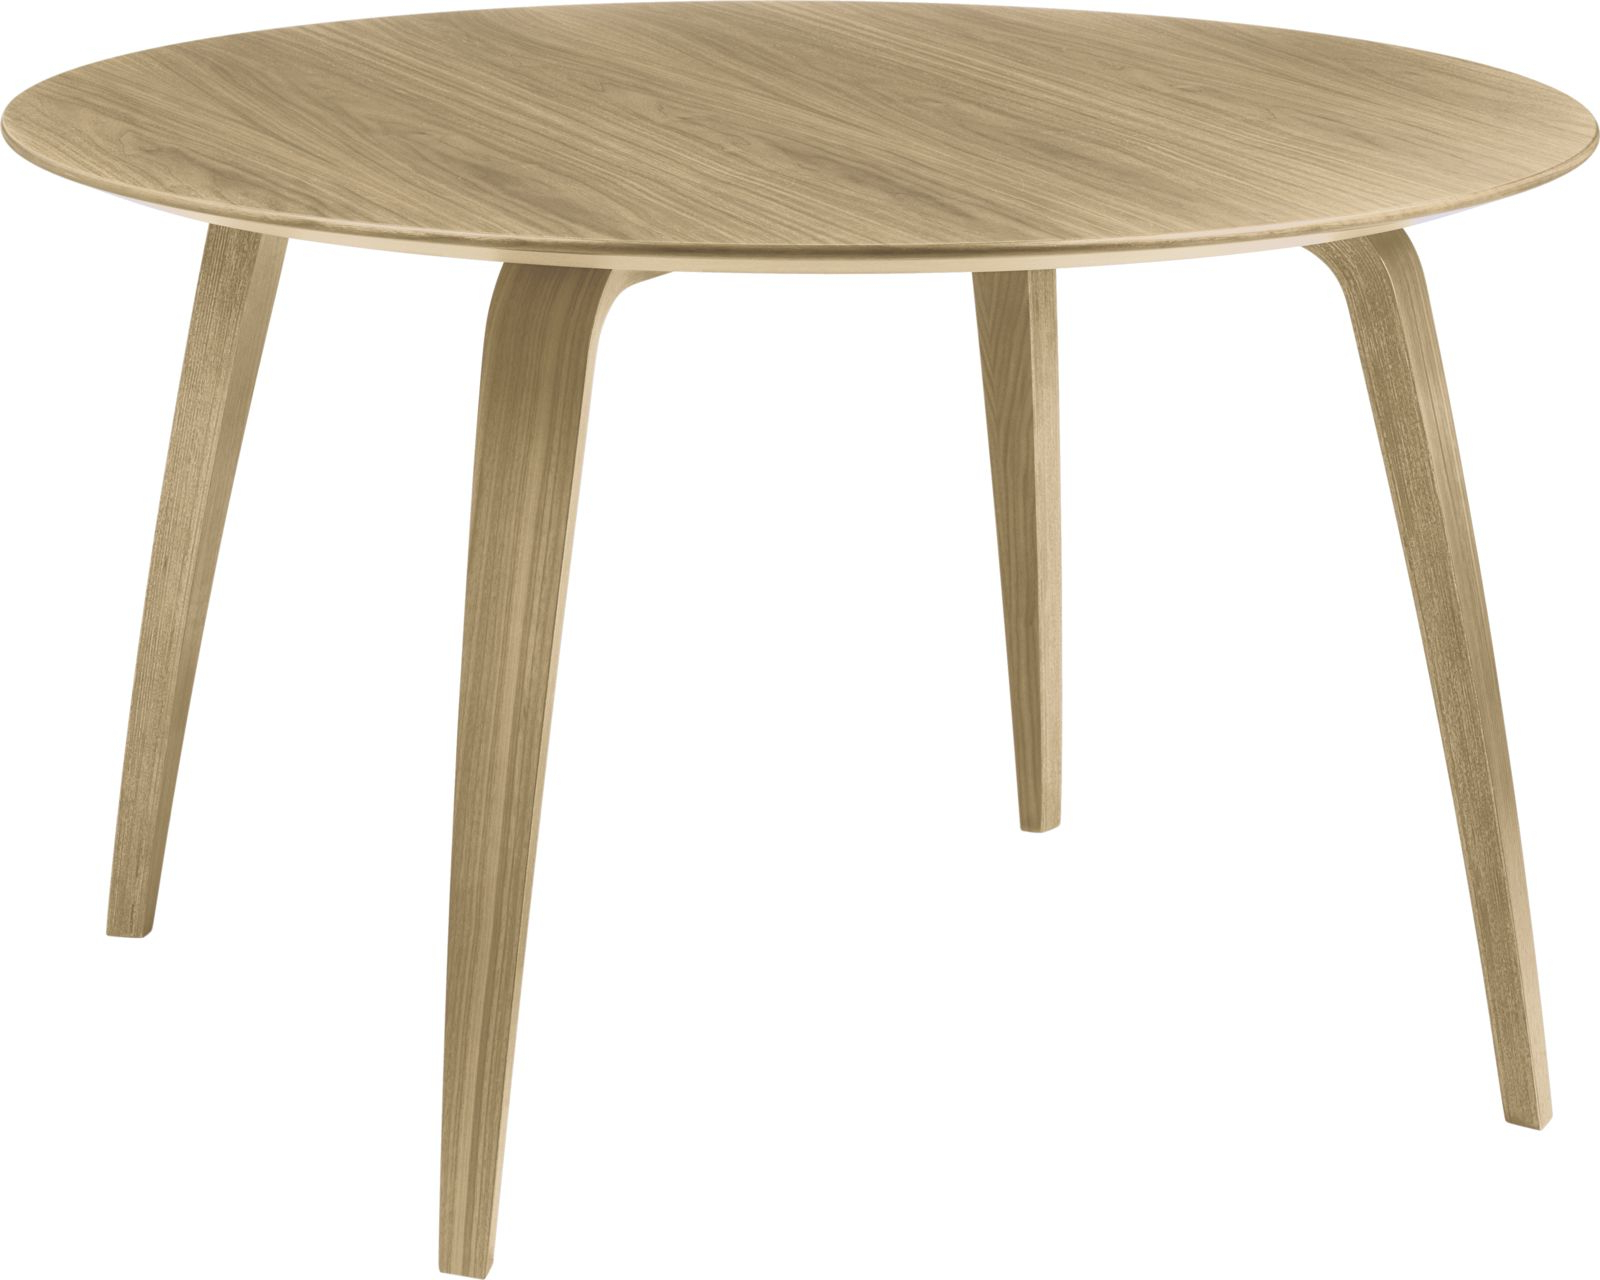 Gubi – Gubi Dining Tables, Round, Rectangular & Elliptical Intended For Current Dining Tables With Stained Ash Walnut (View 10 of 30)